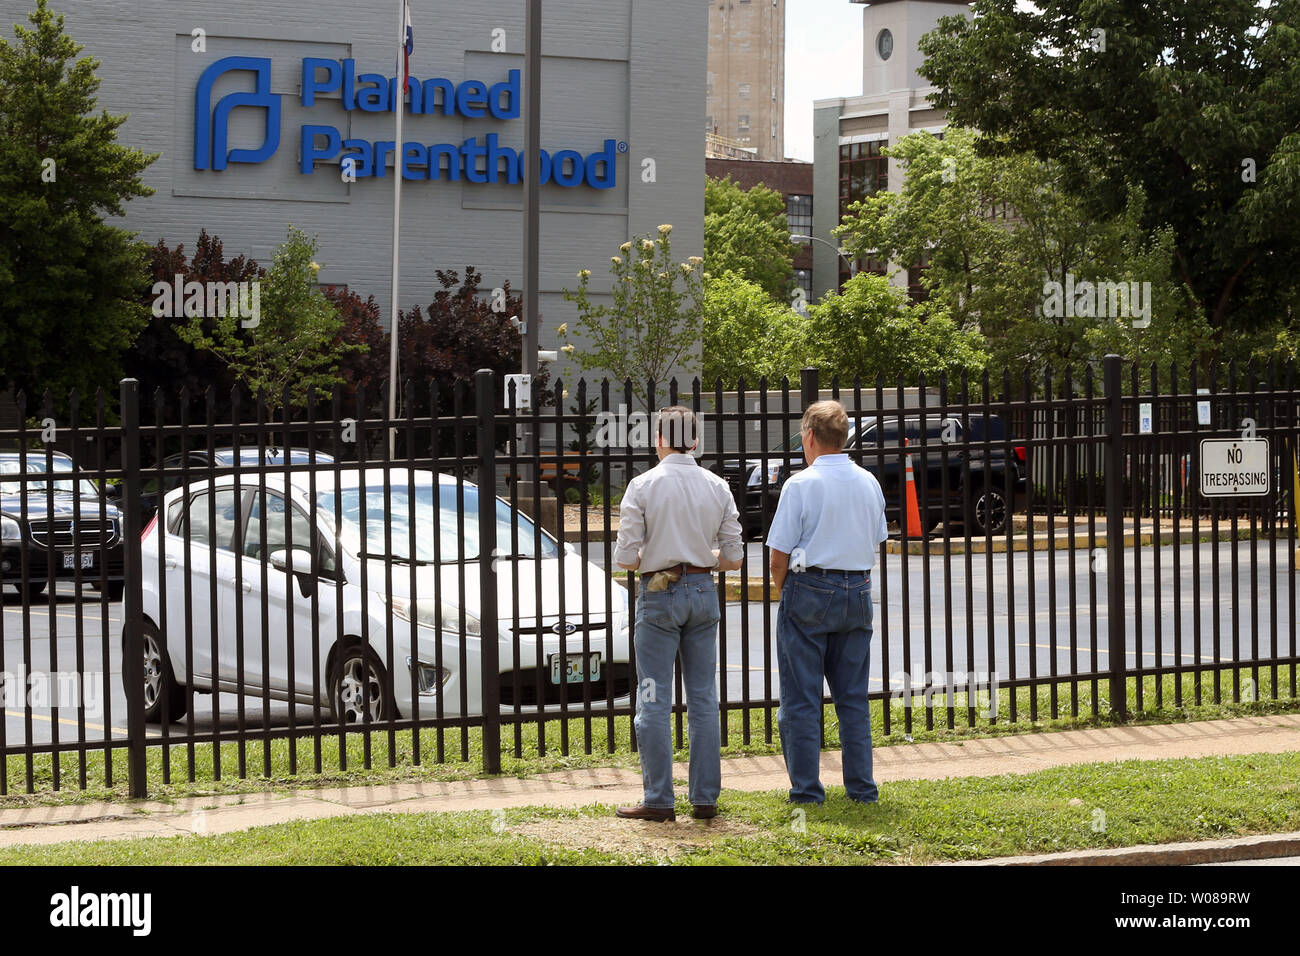 Men stand quietly, praying outside the fence of the Planned